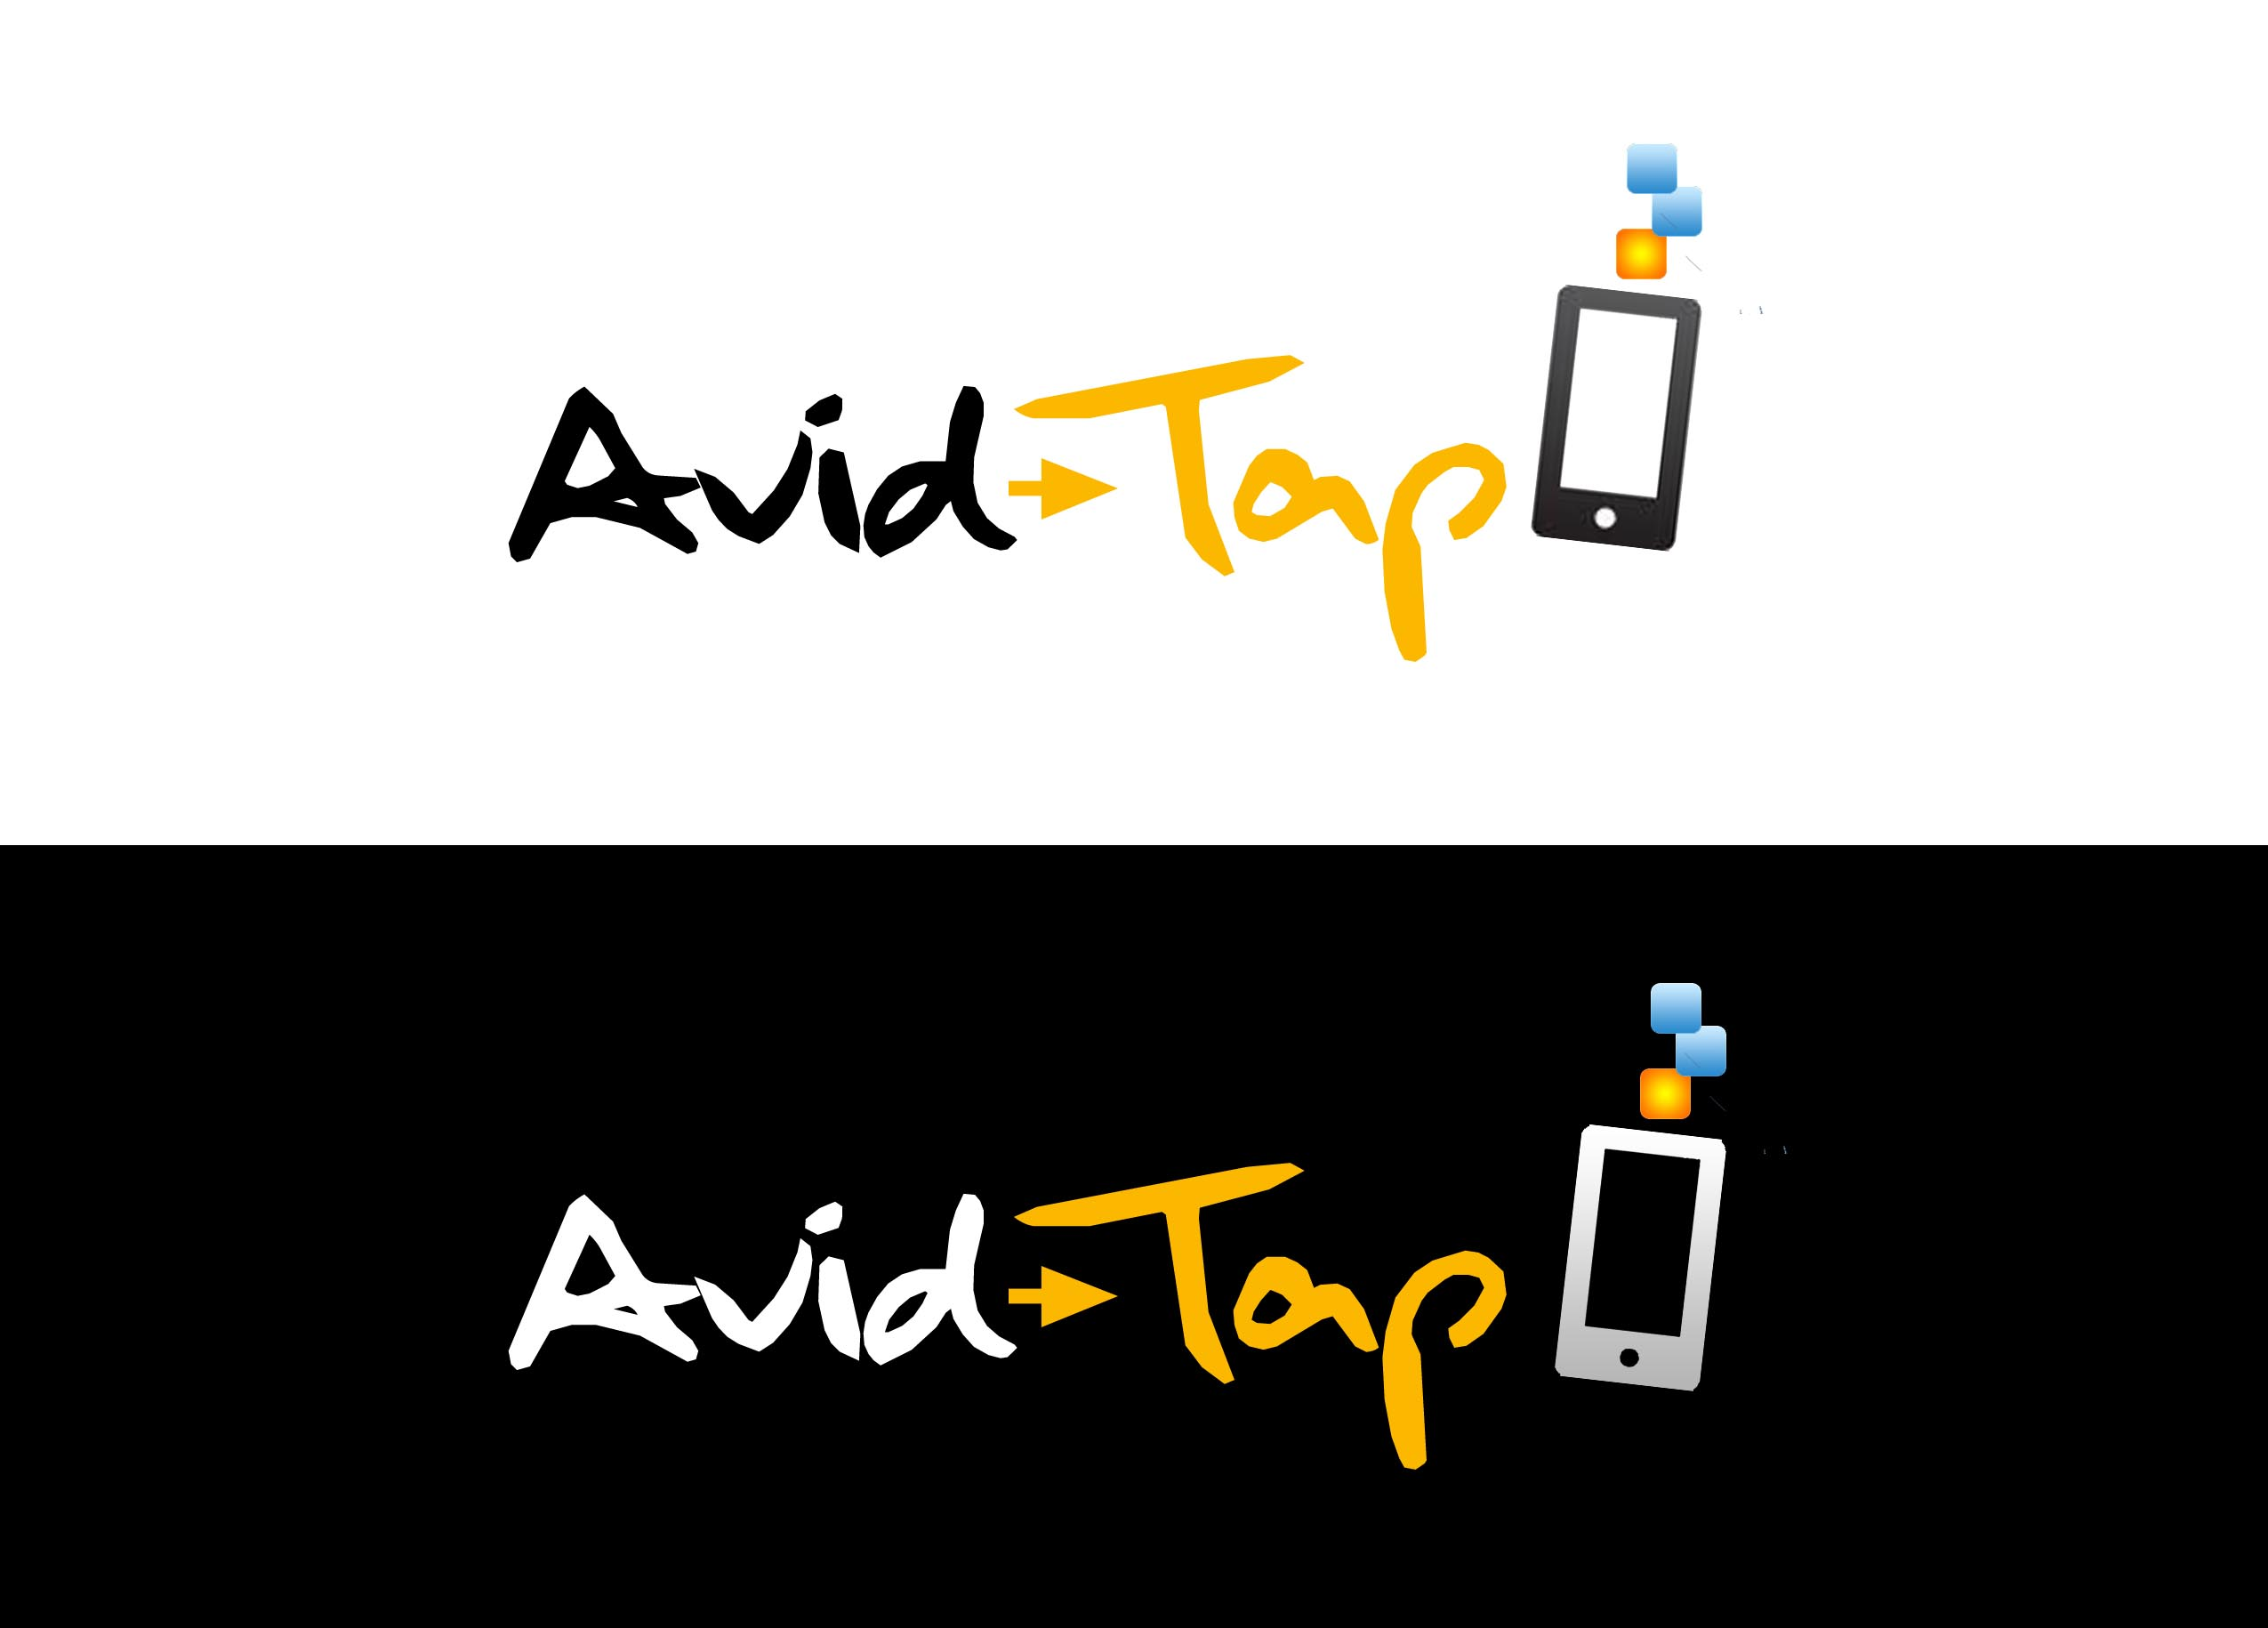 Logo Design by Lama Creative - Entry No. 111 in the Logo Design Contest Imaginative Logo Design for AvidTap.